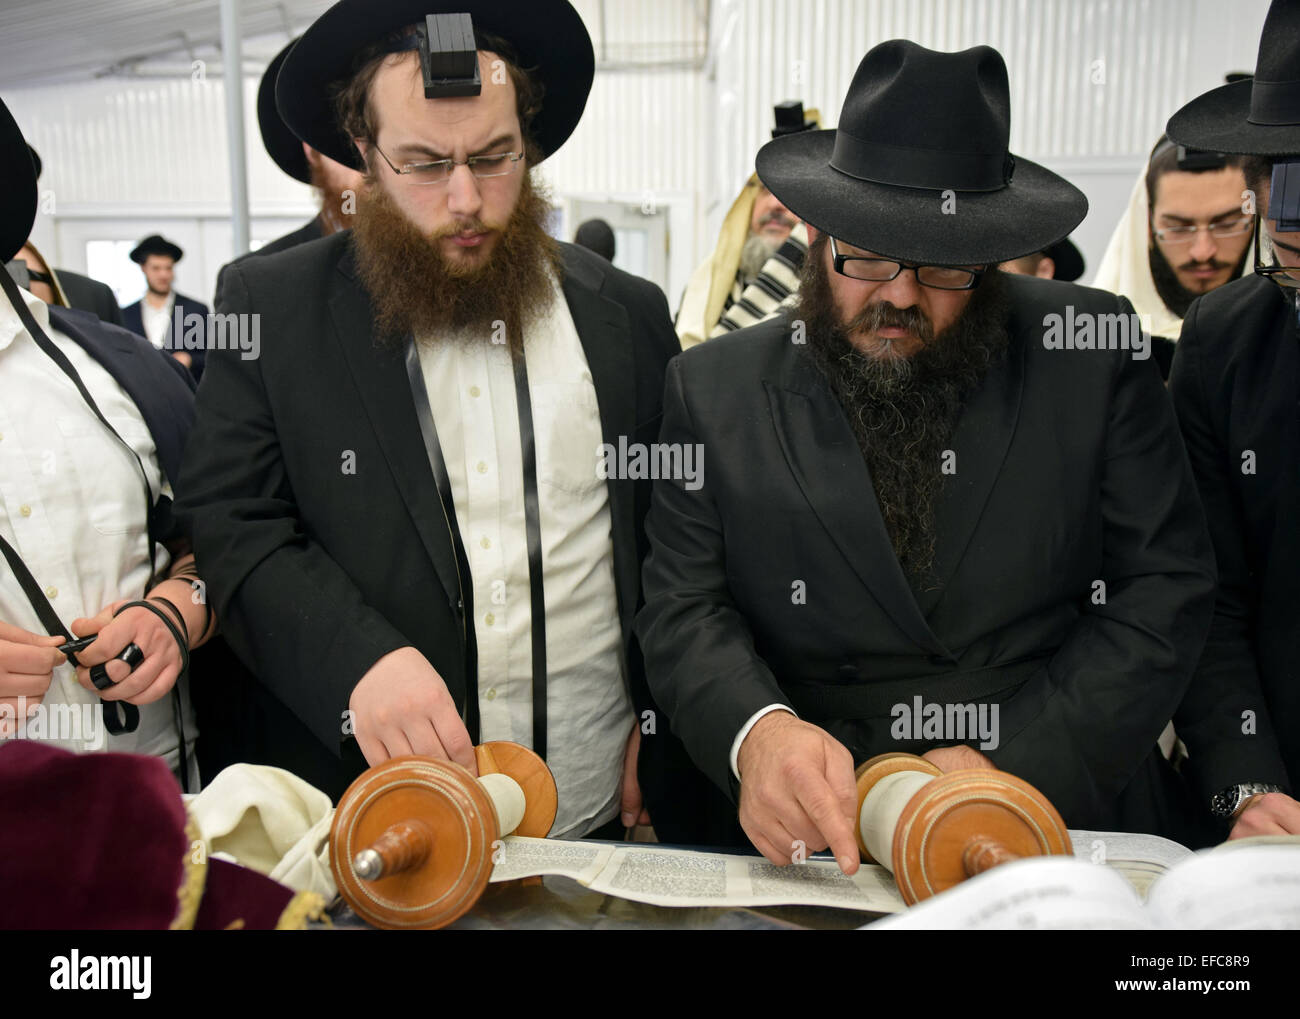 Torah reading during a morning prayers at the Ohel synagogue in Queens, New York - Stock Image